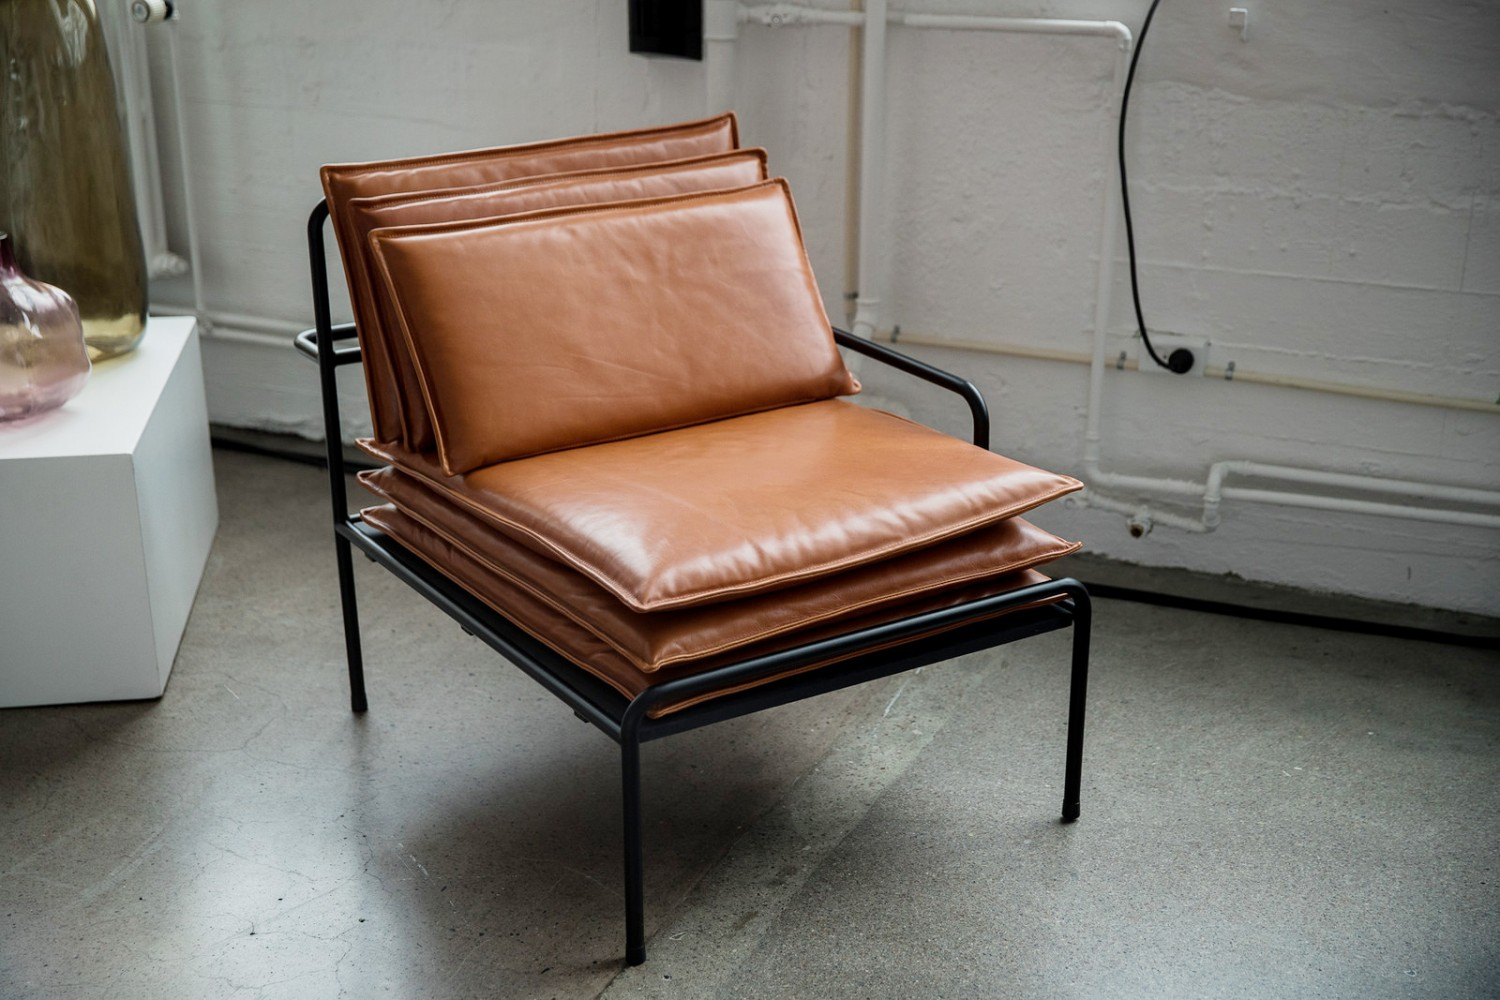 Costumers favorite was the chair designed by Linea Ek Blæhr.